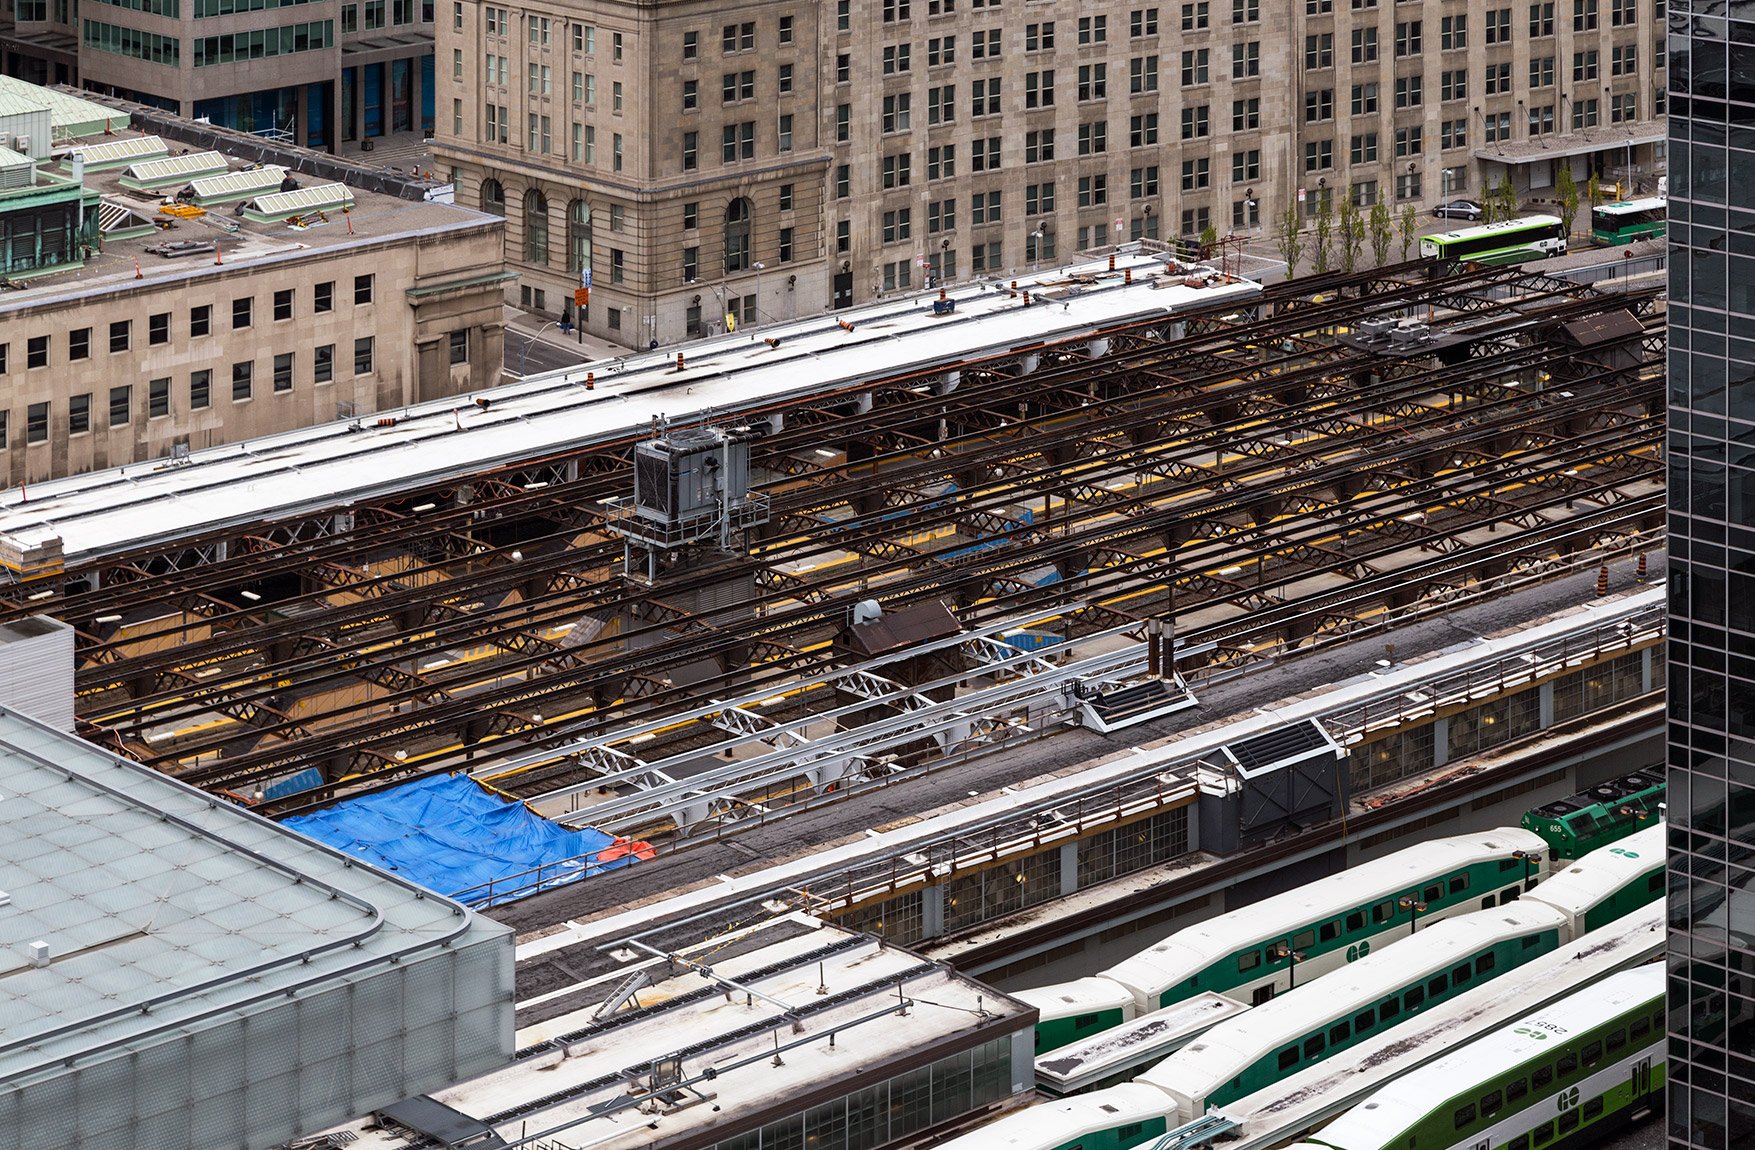 20160622. An aerial view of Toronto Union Station's historic exp